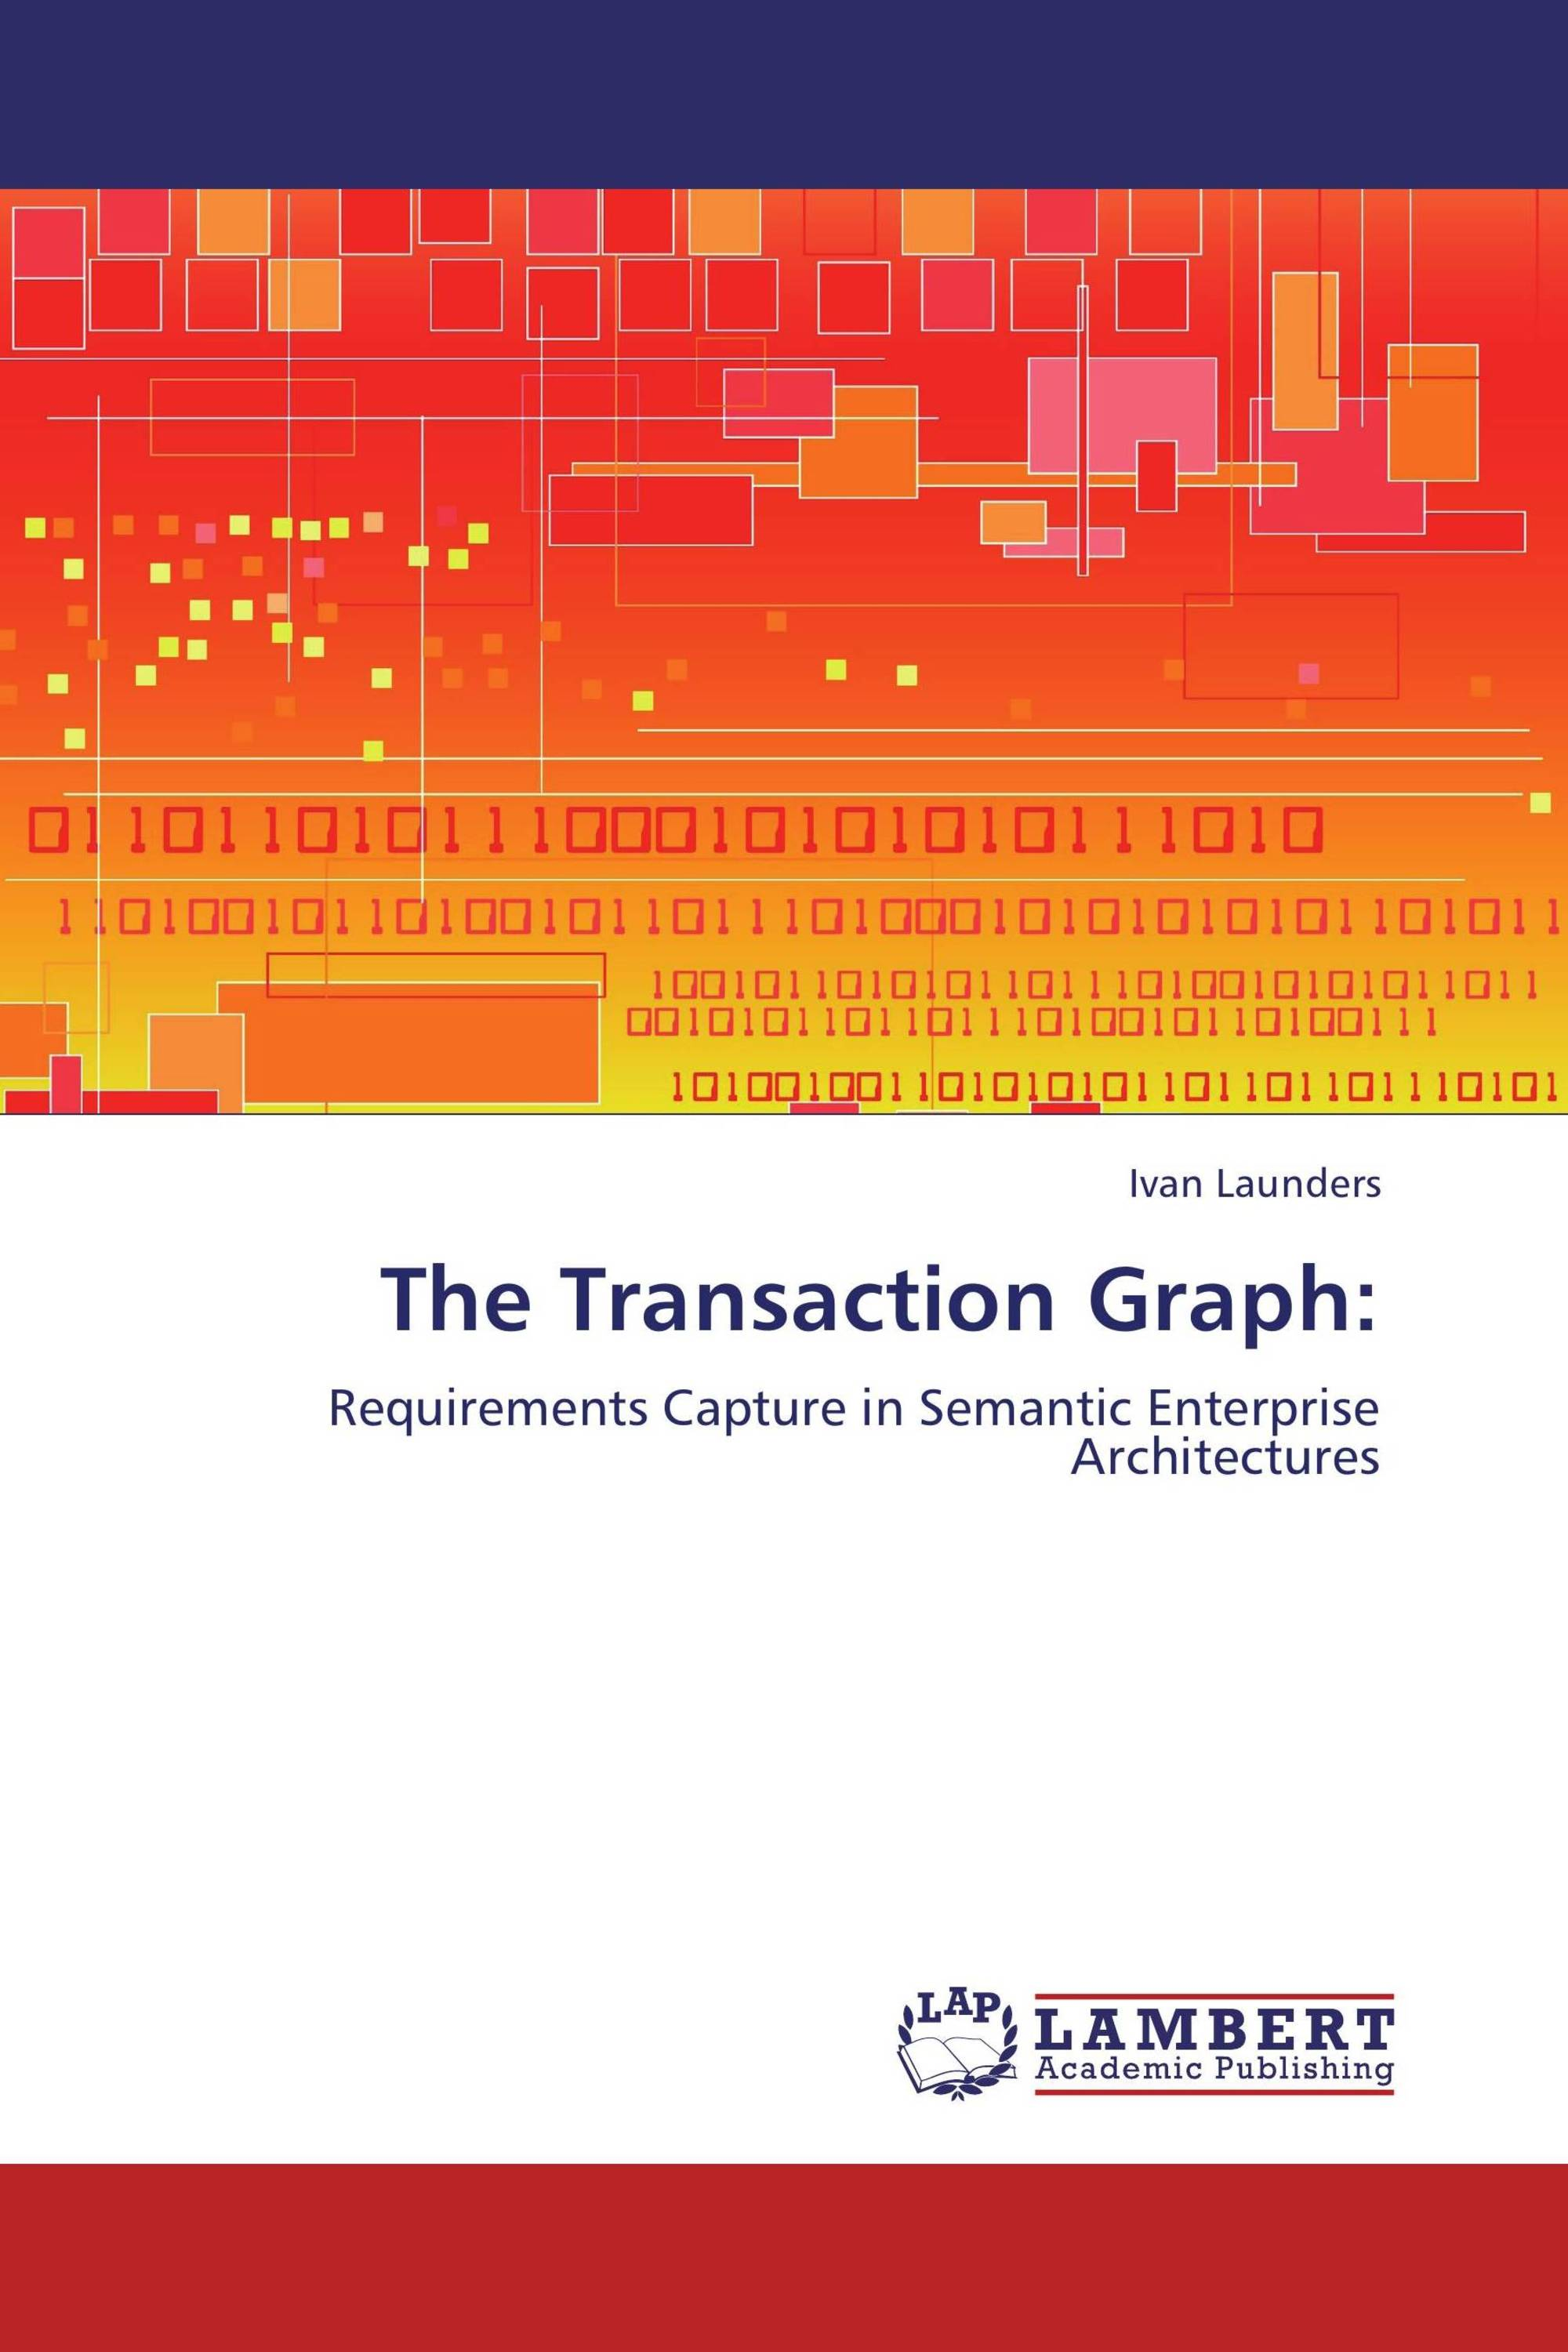 The Transaction Graph: